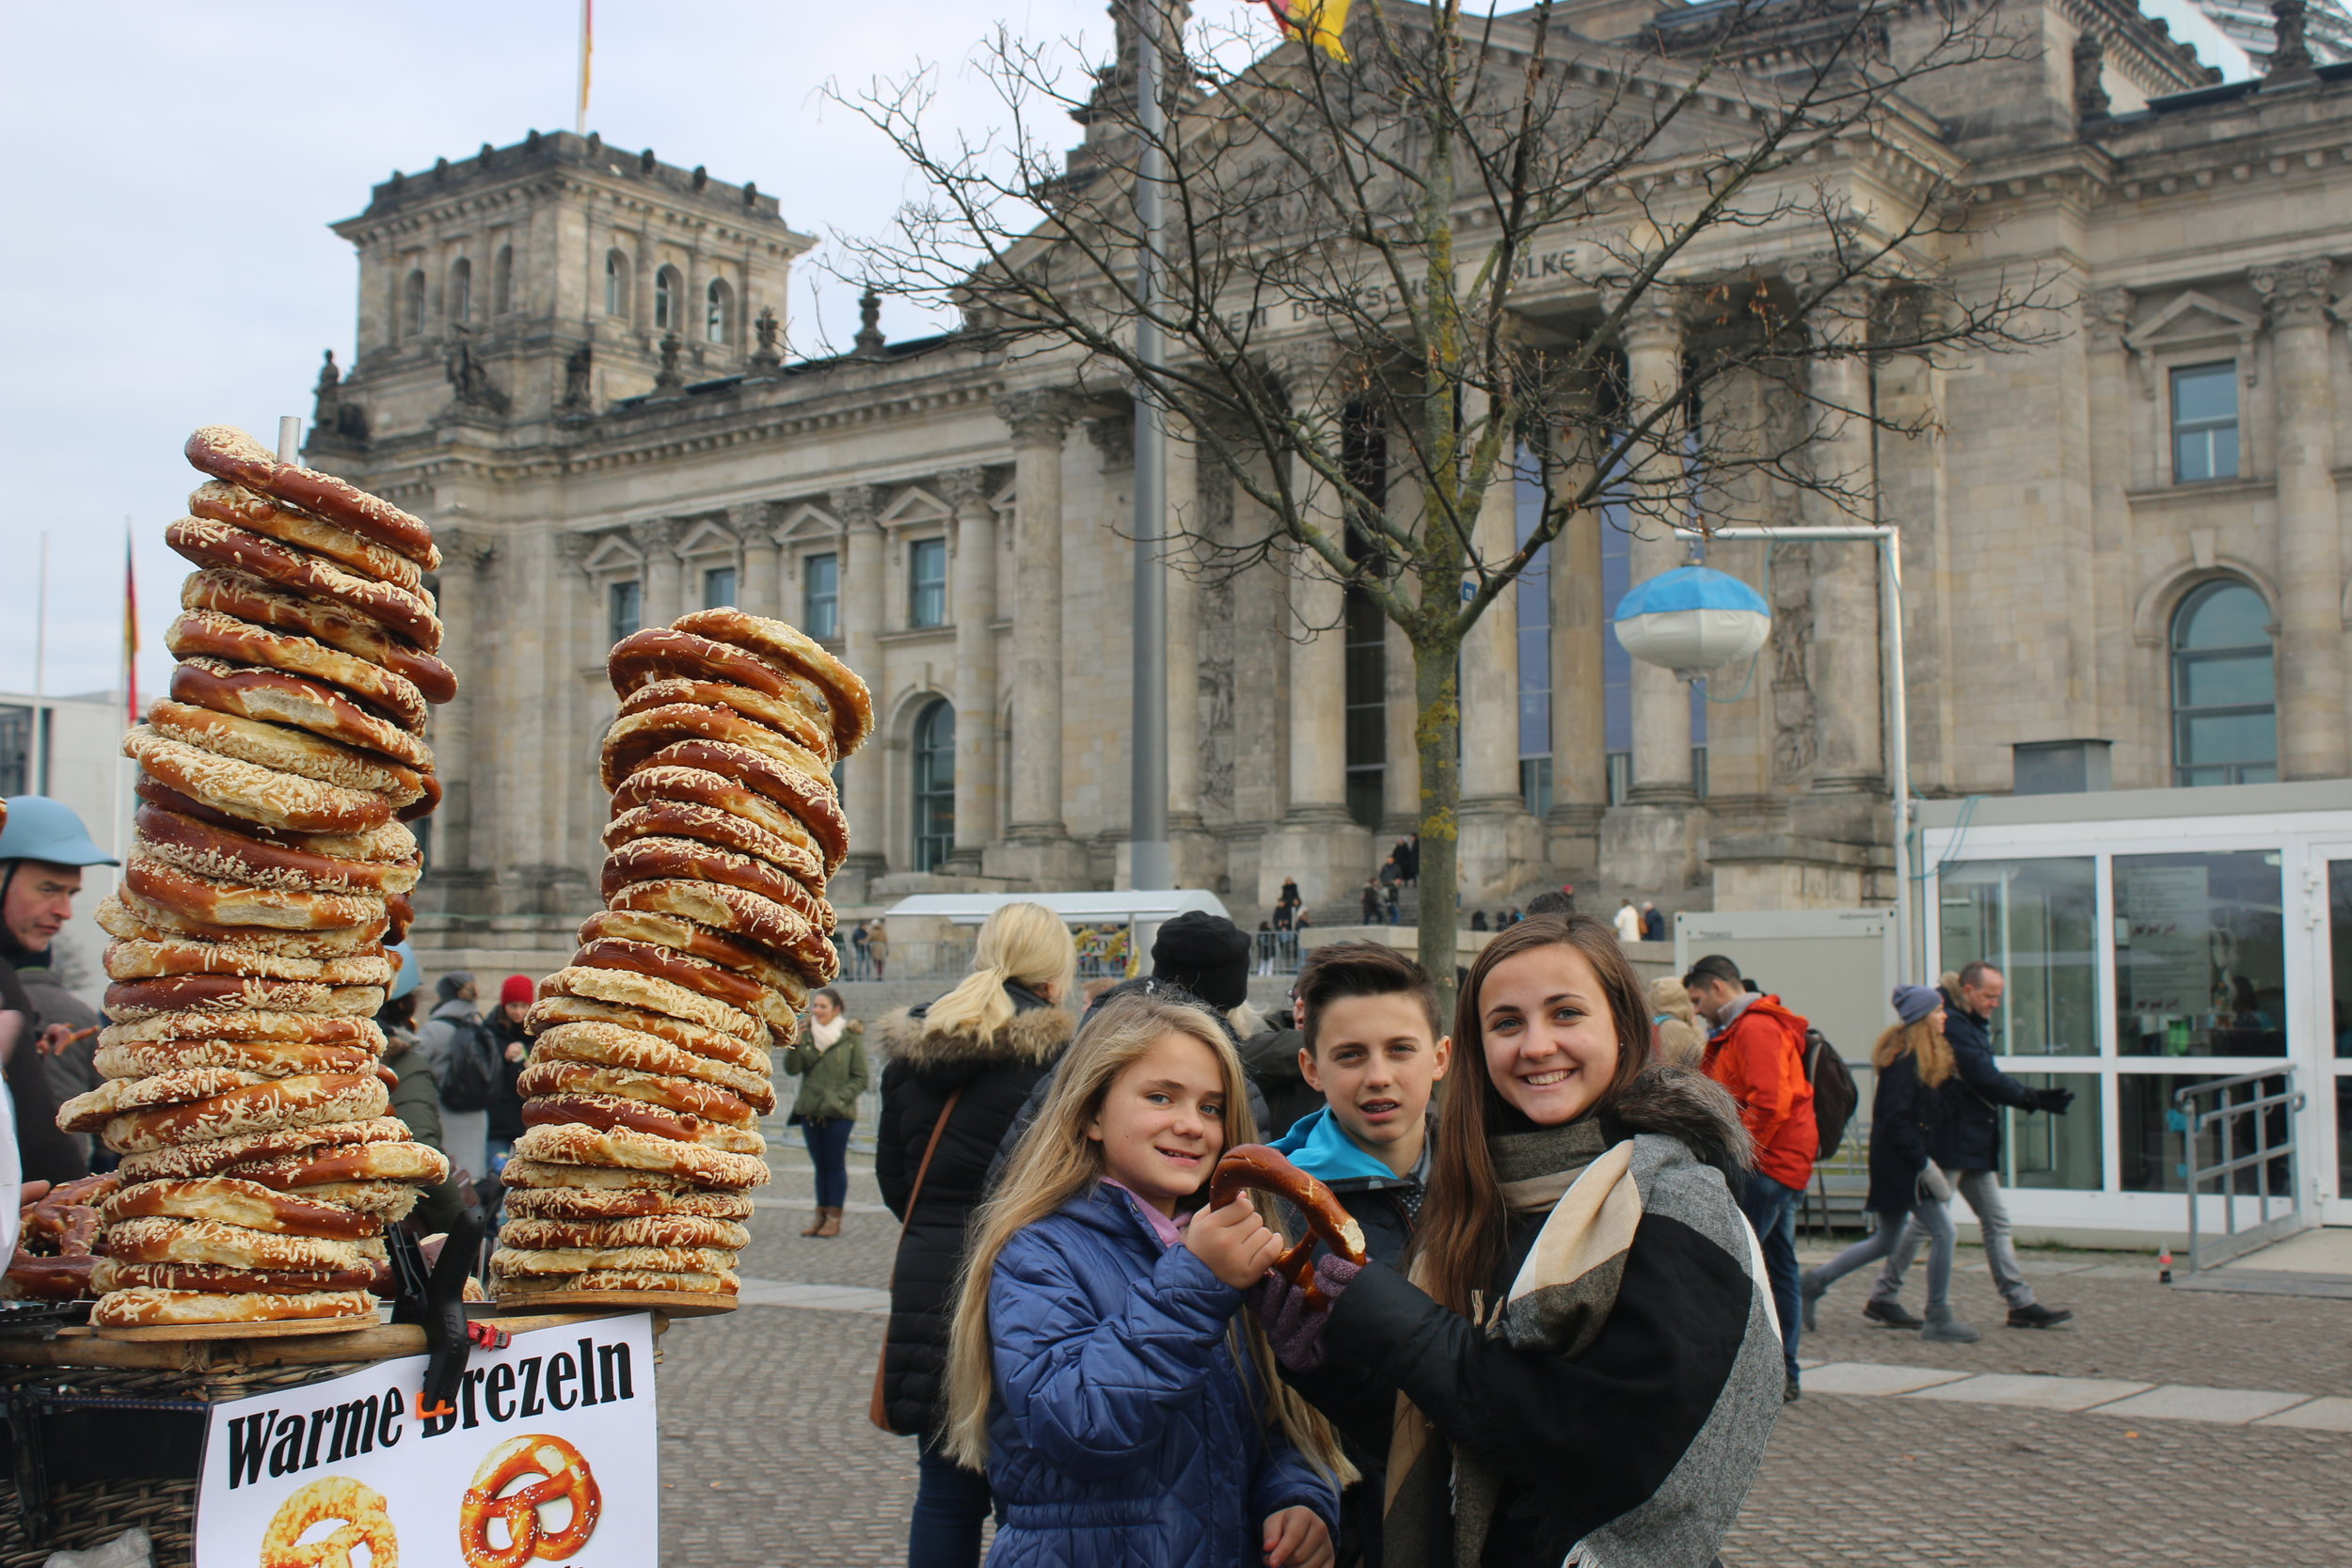 Warm pretzels from a street vendor are the absolute best!